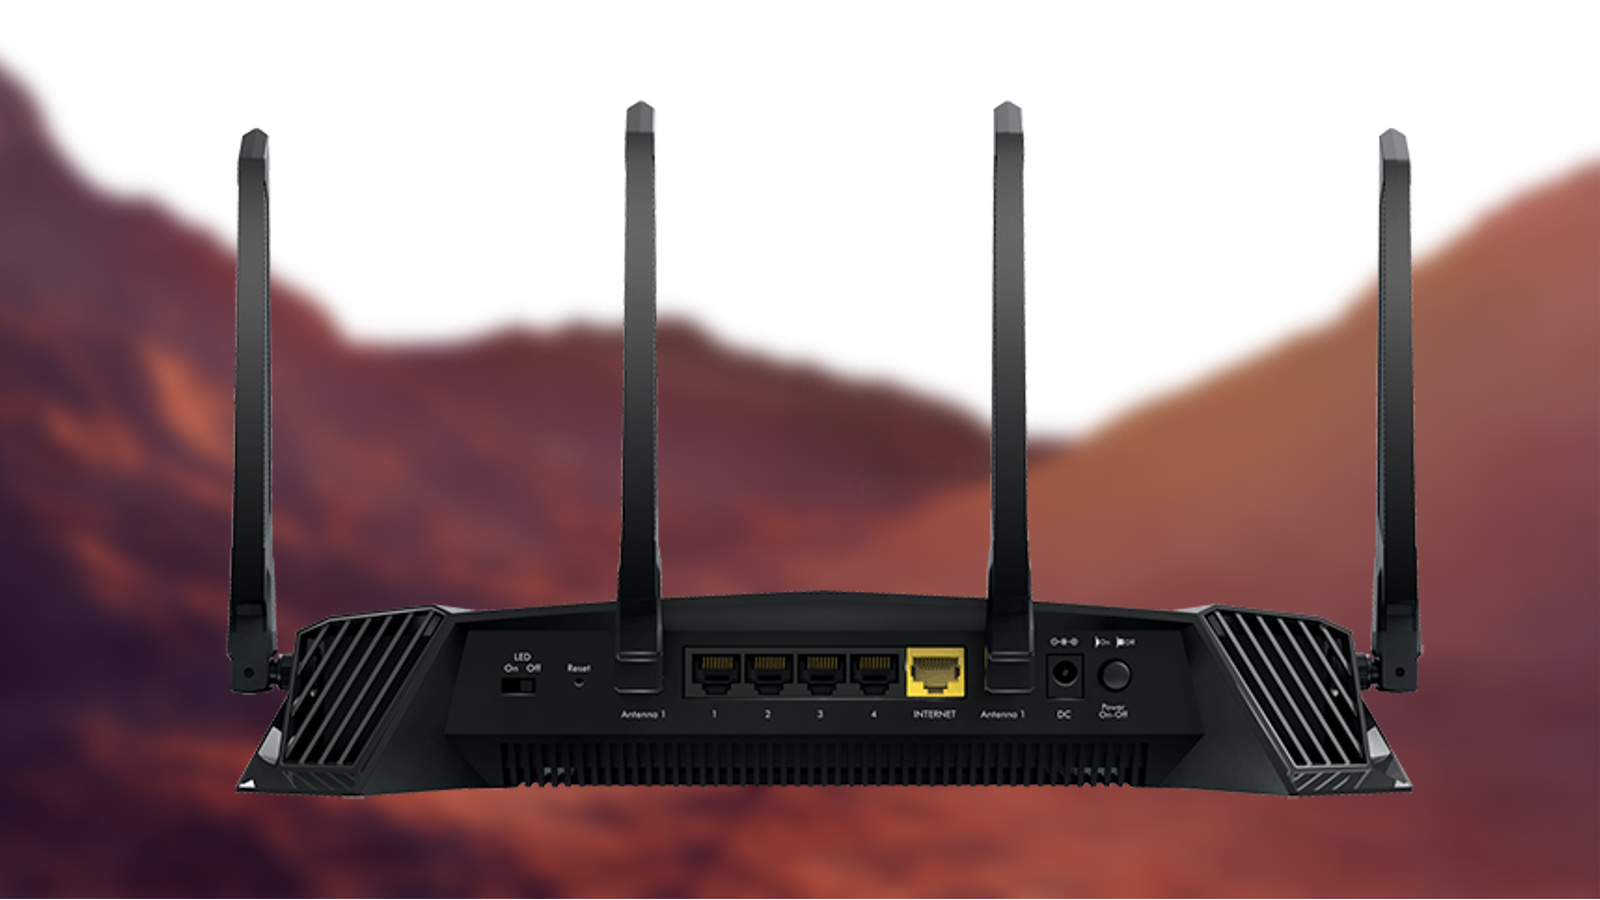 netgear-store-nighthawk-pro-xr500-gaming-router-review-duma-os-測試-評測-測評-開箱